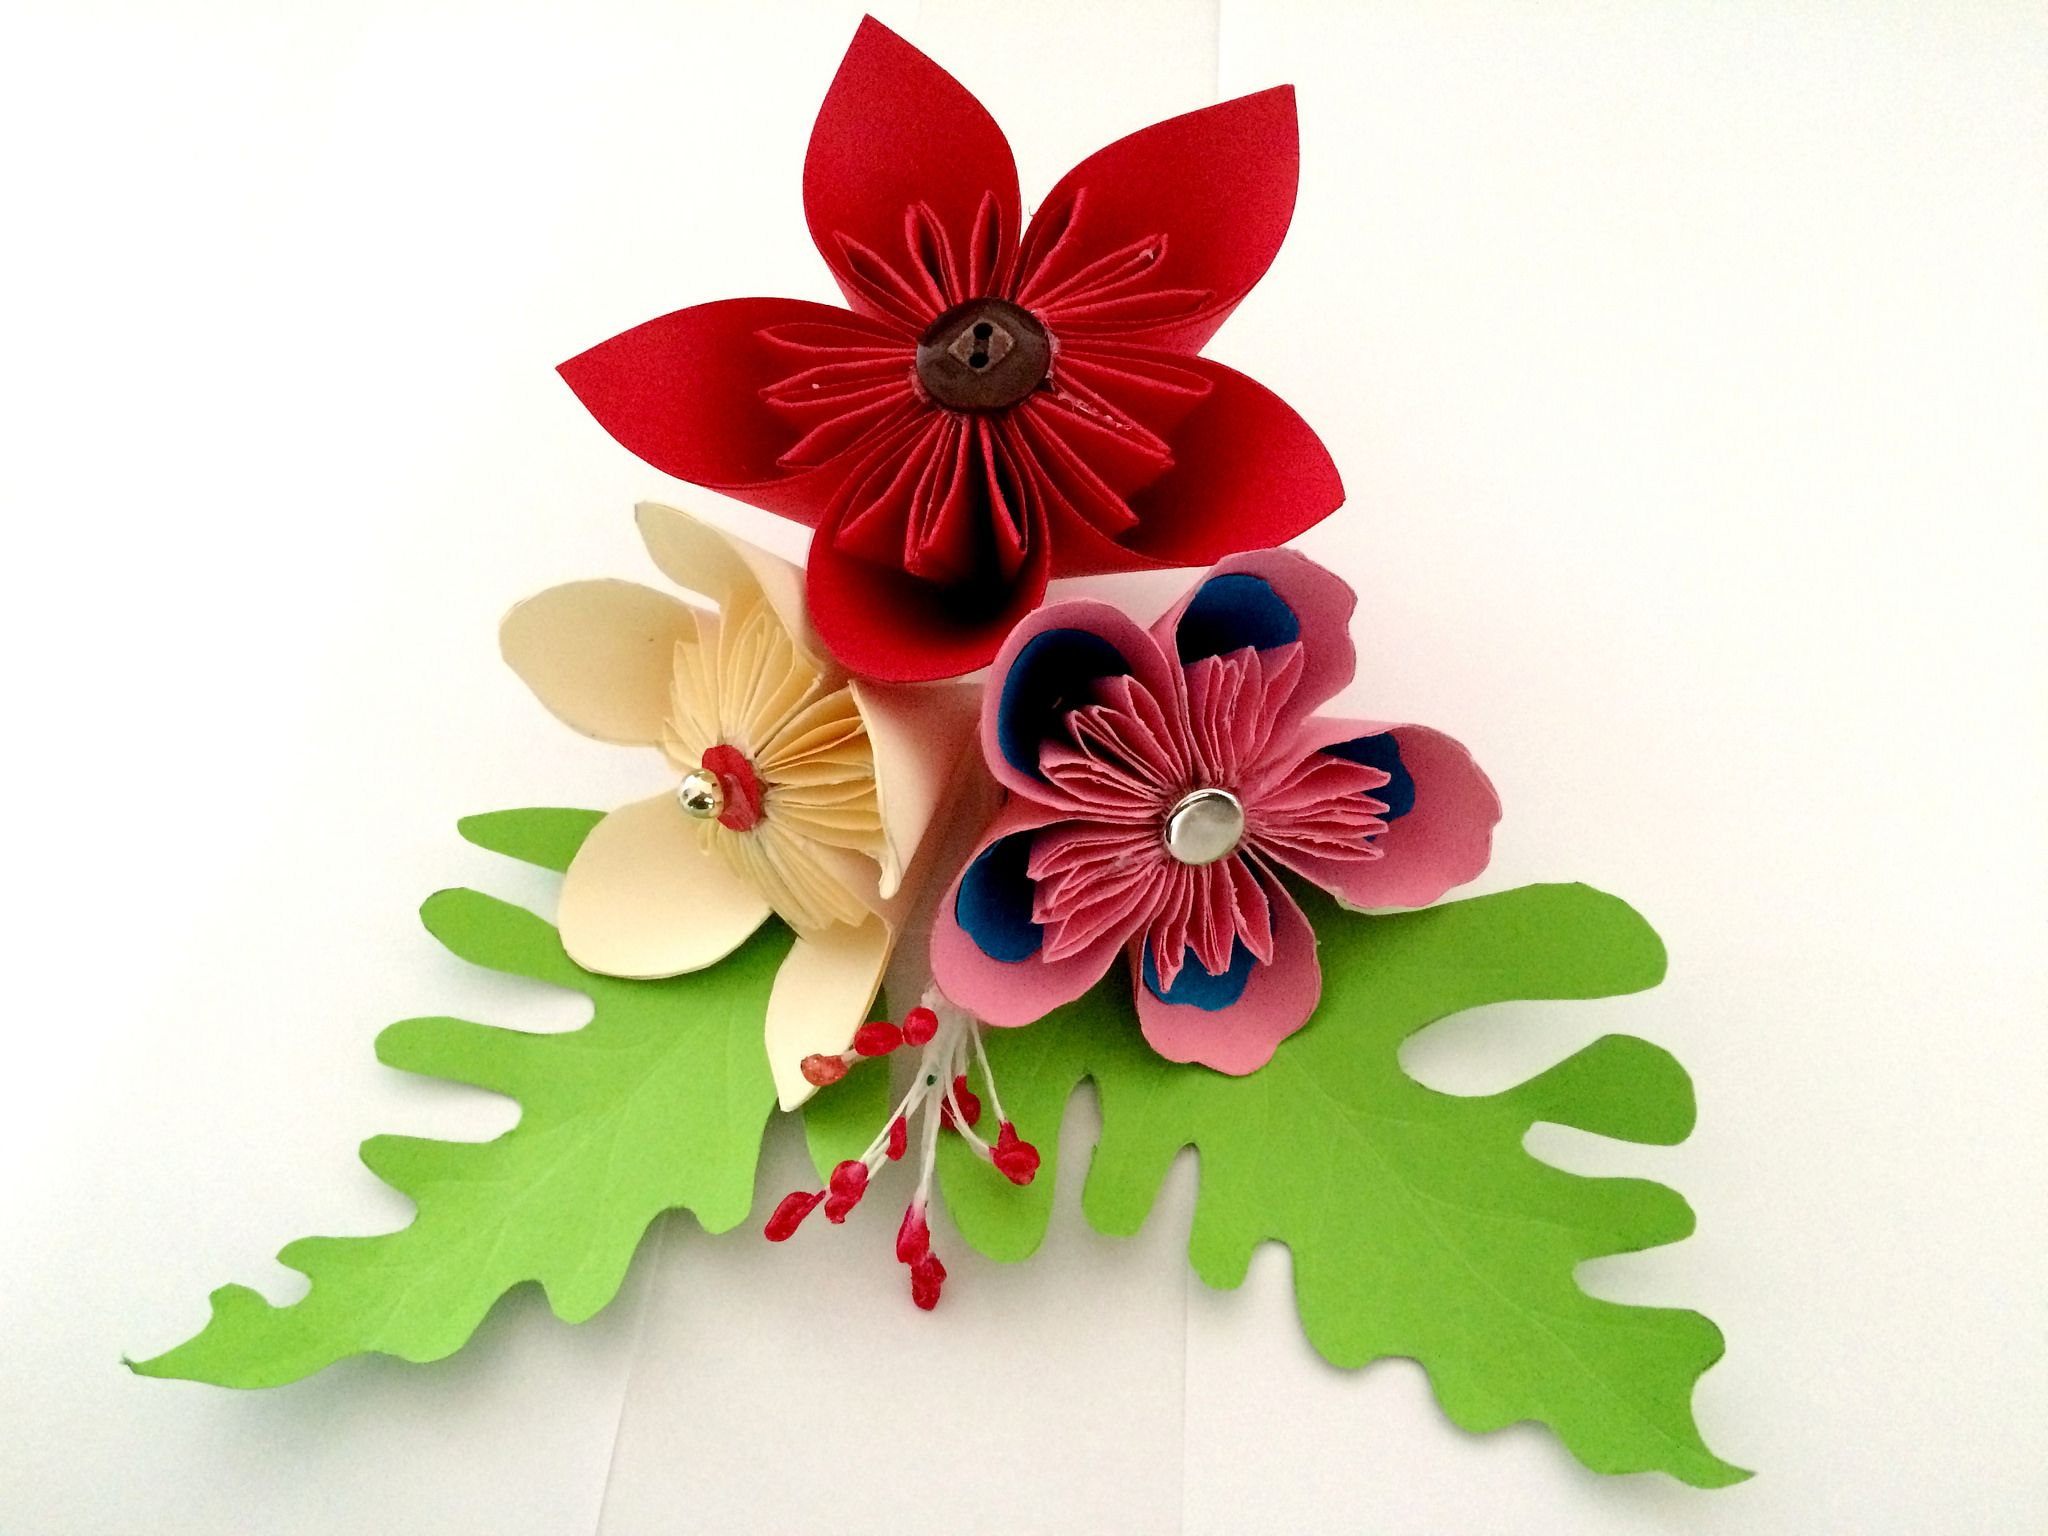 Different origami flowers image collections flower decoration ideas three different origami flowers for beginners as easy tutorials three different origami flowers for beginners as mightylinksfo Gallery